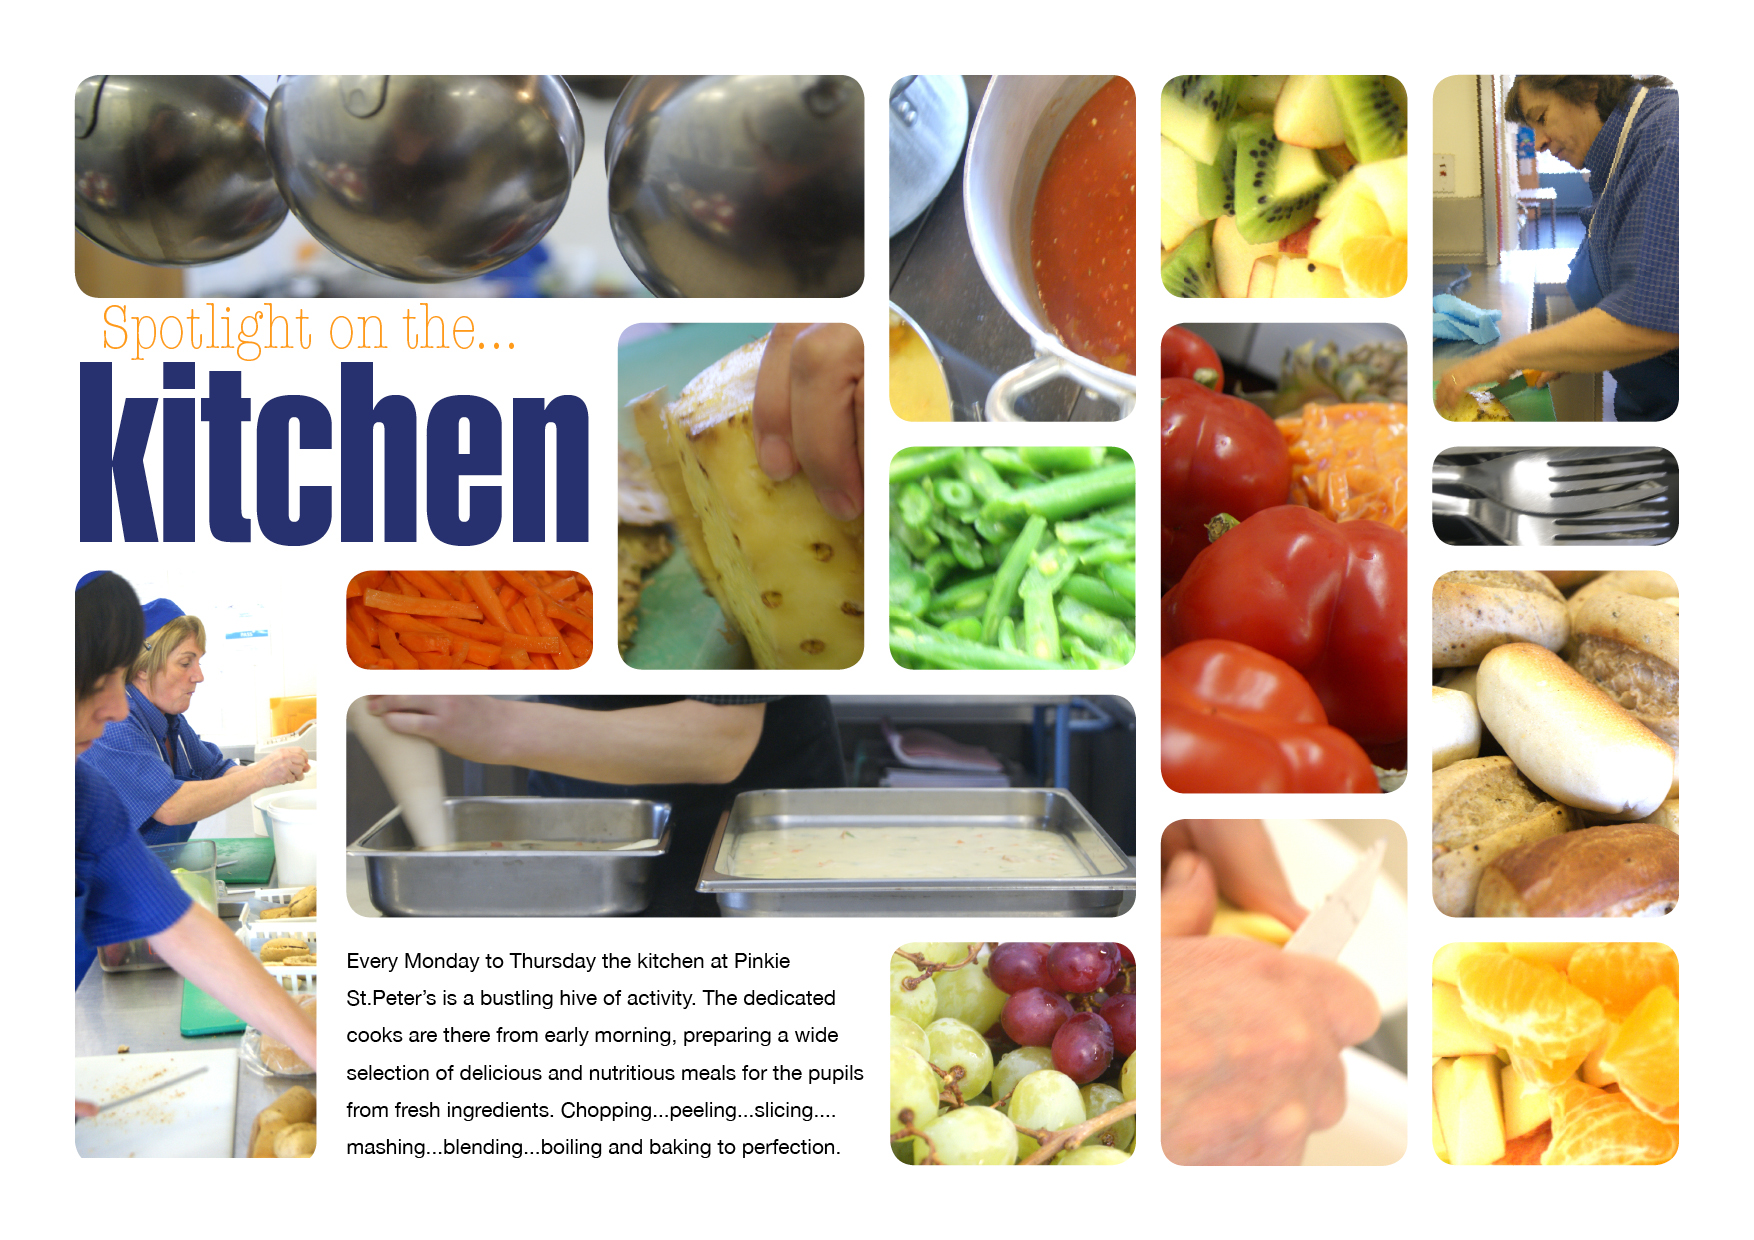 montage of scenes from the school kitchen